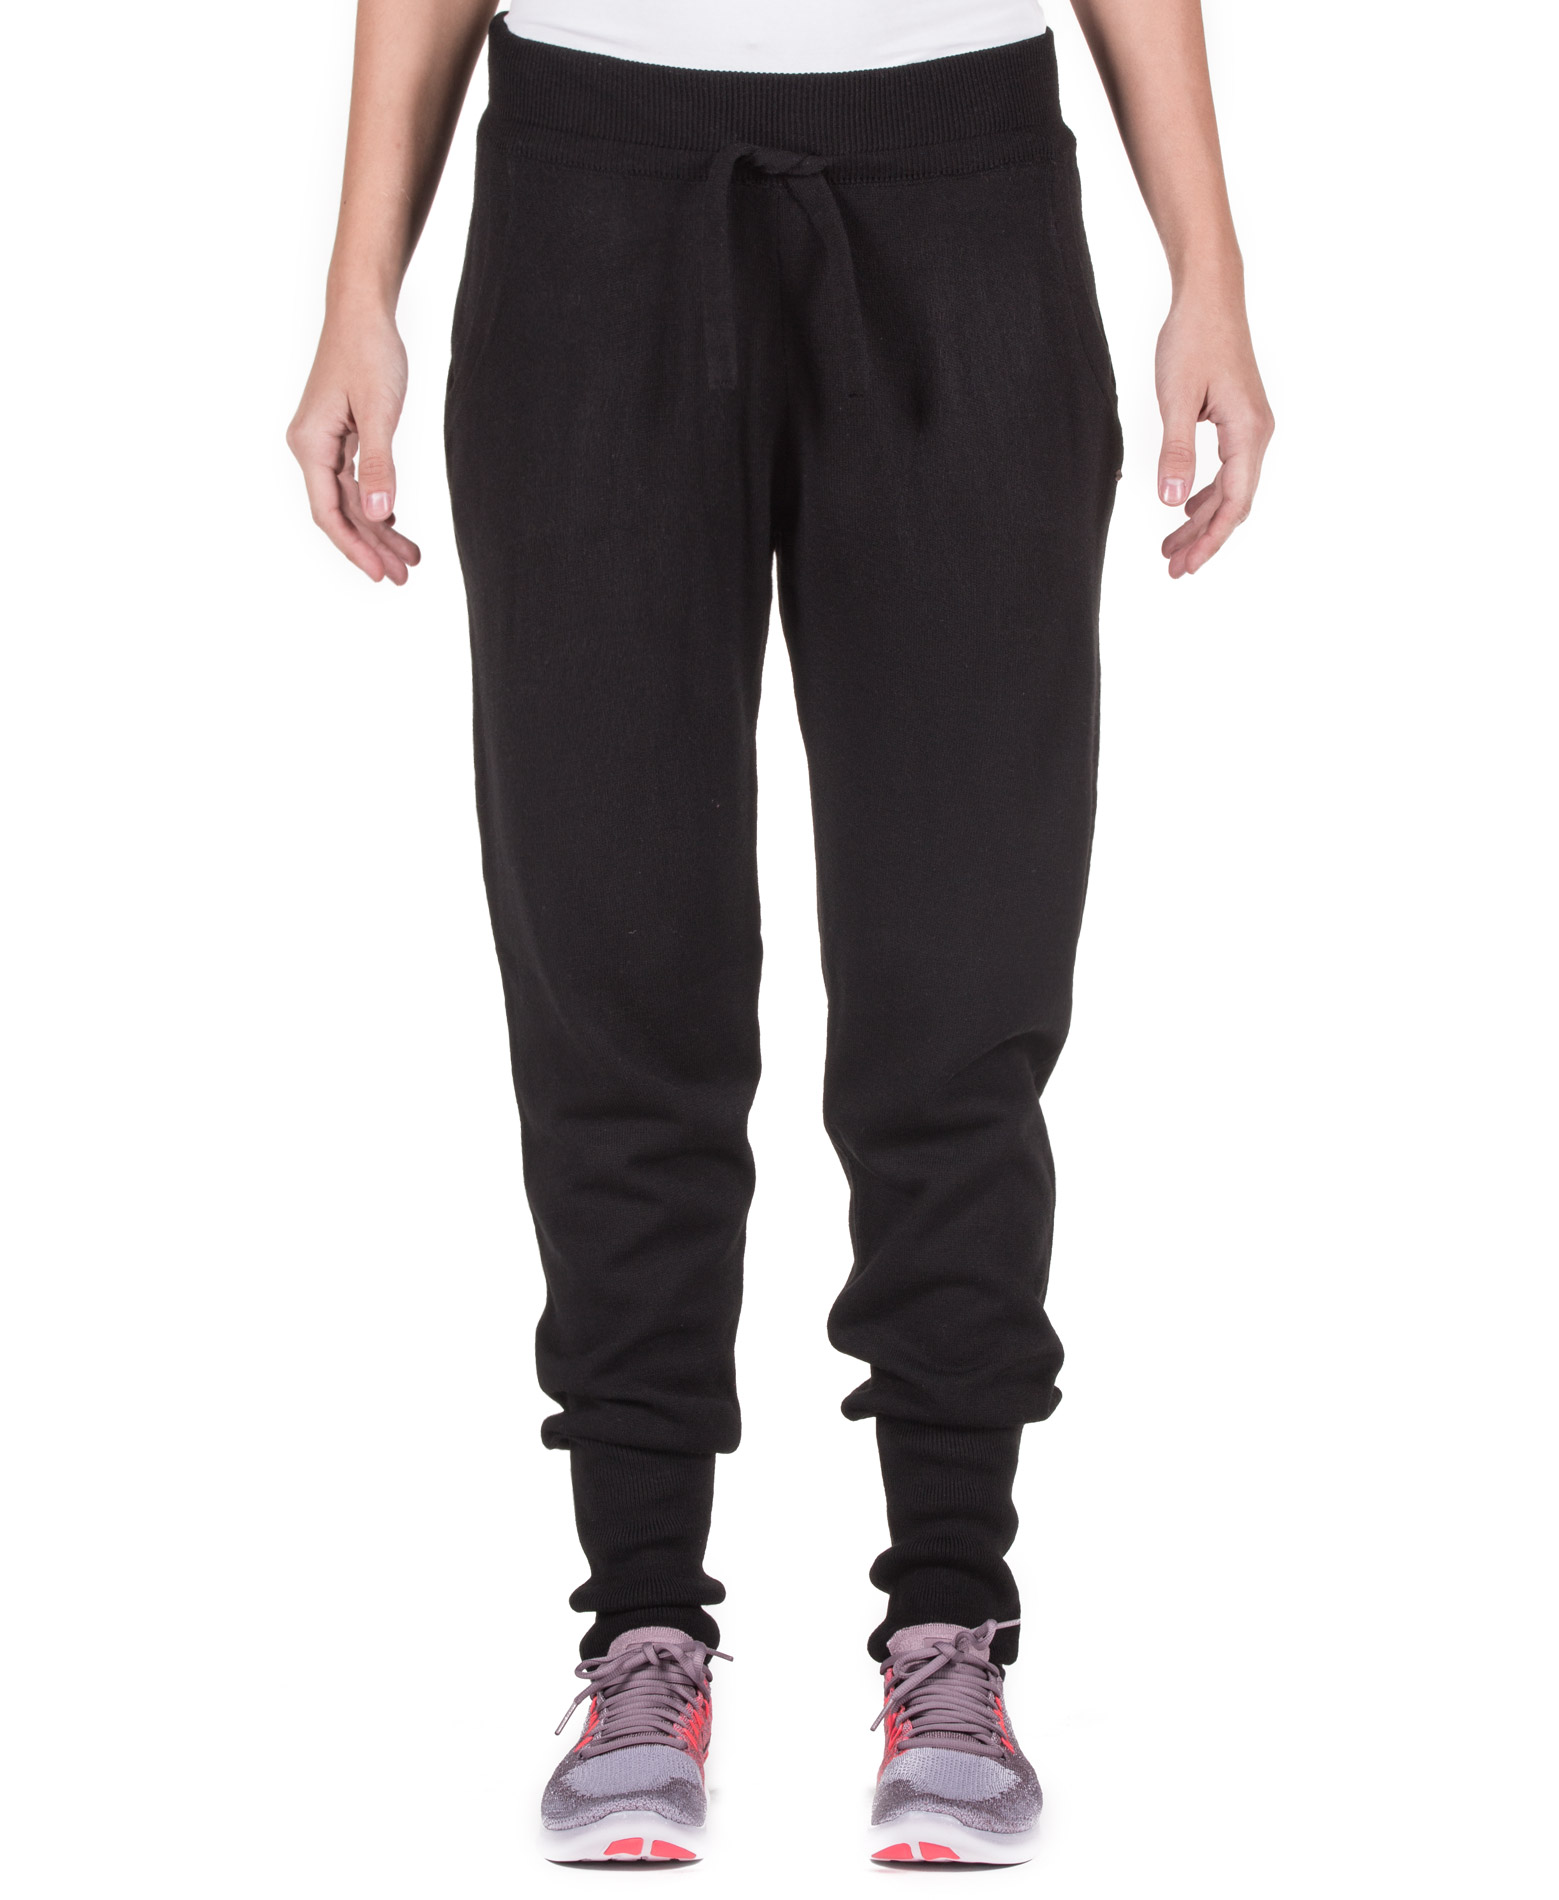 O'NEILL LW KNITTED JOGGER PANTS 7P7712-9010 Μαύρο